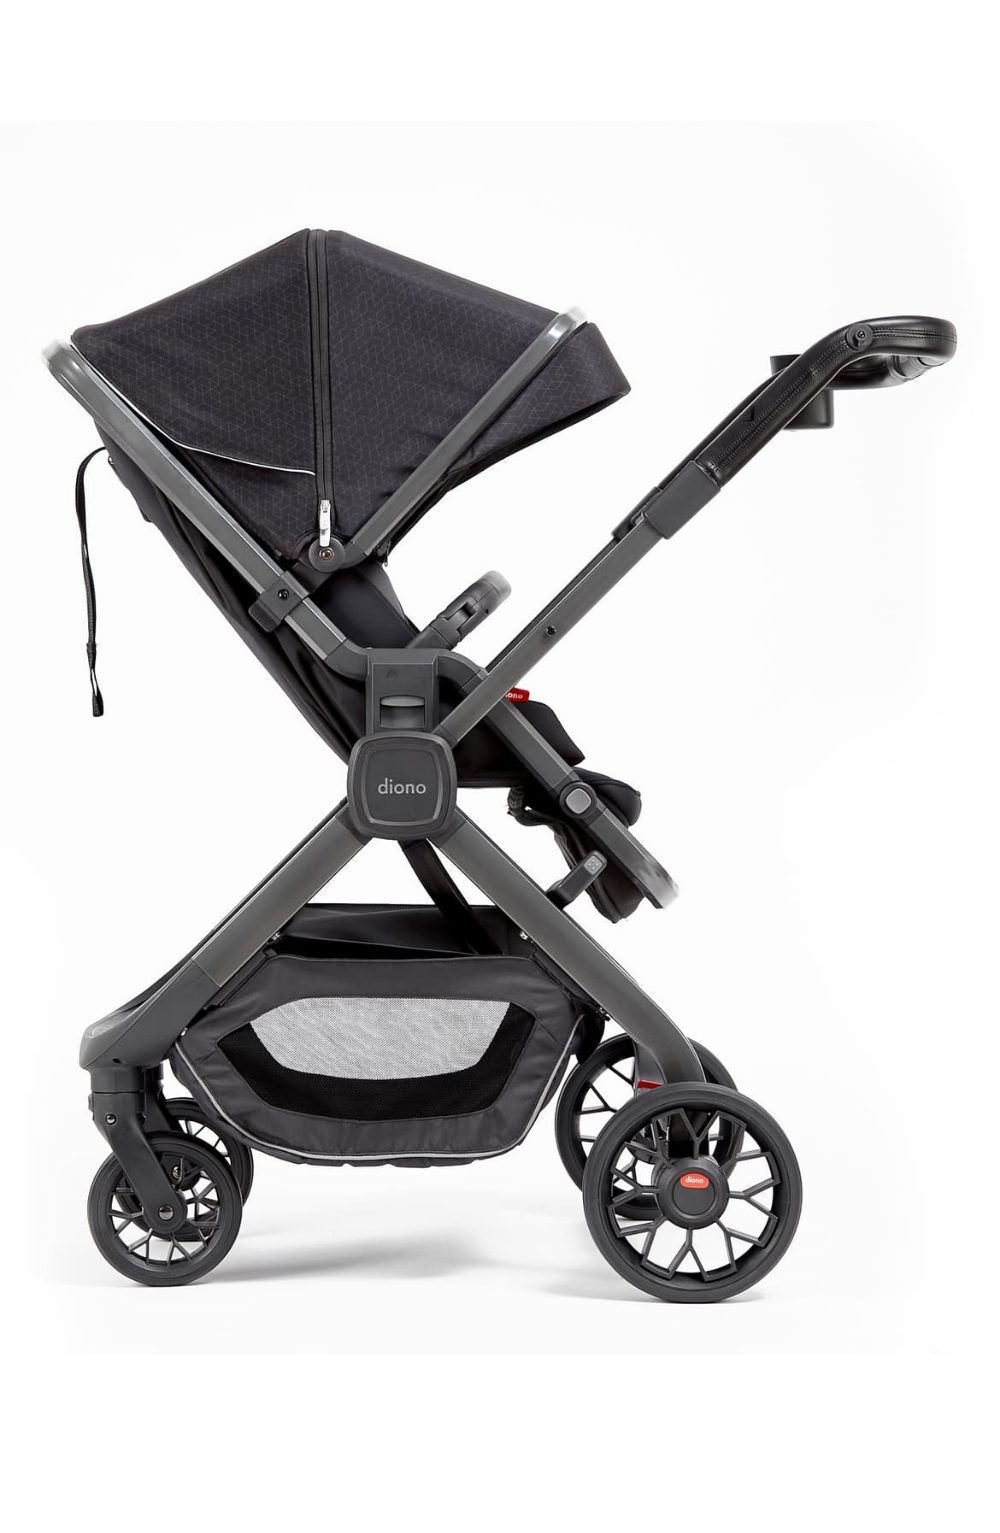 Diono Quantum 2 Folding Stroller Baby strollers, Car seats